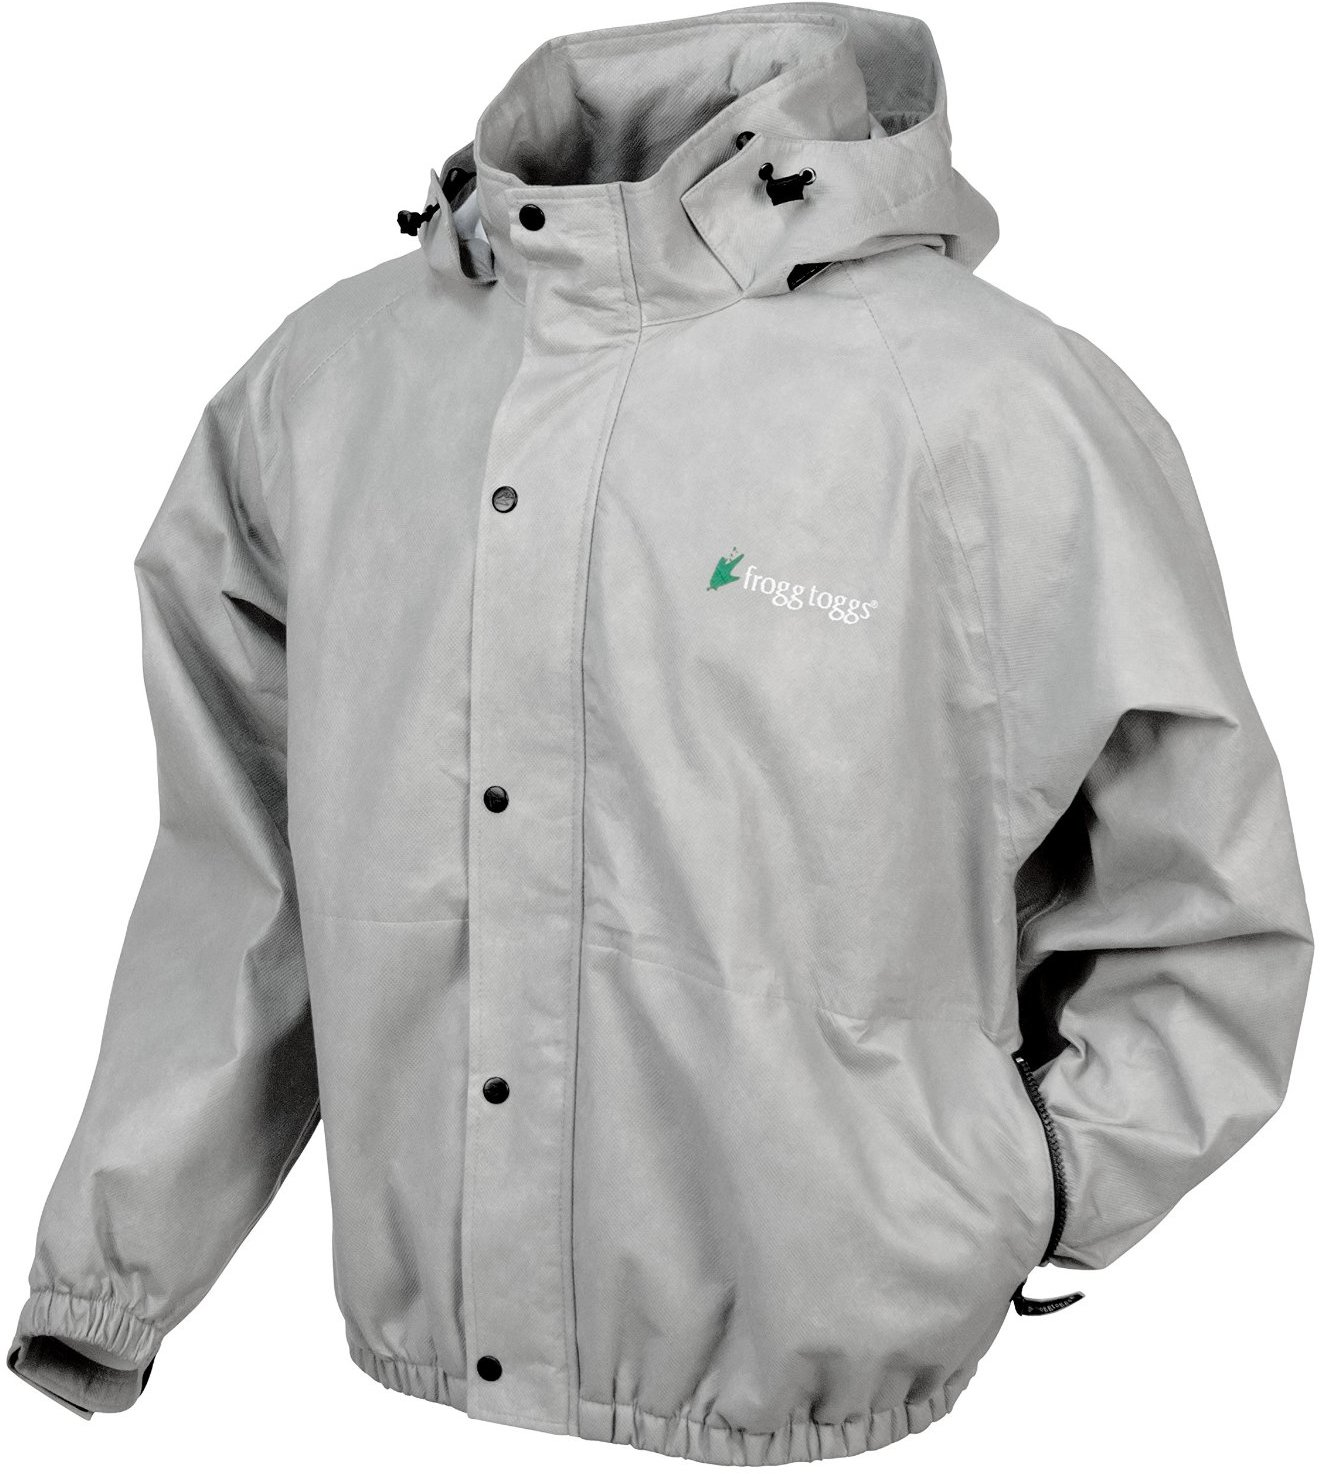 Men's Classic Pro Action Jacket